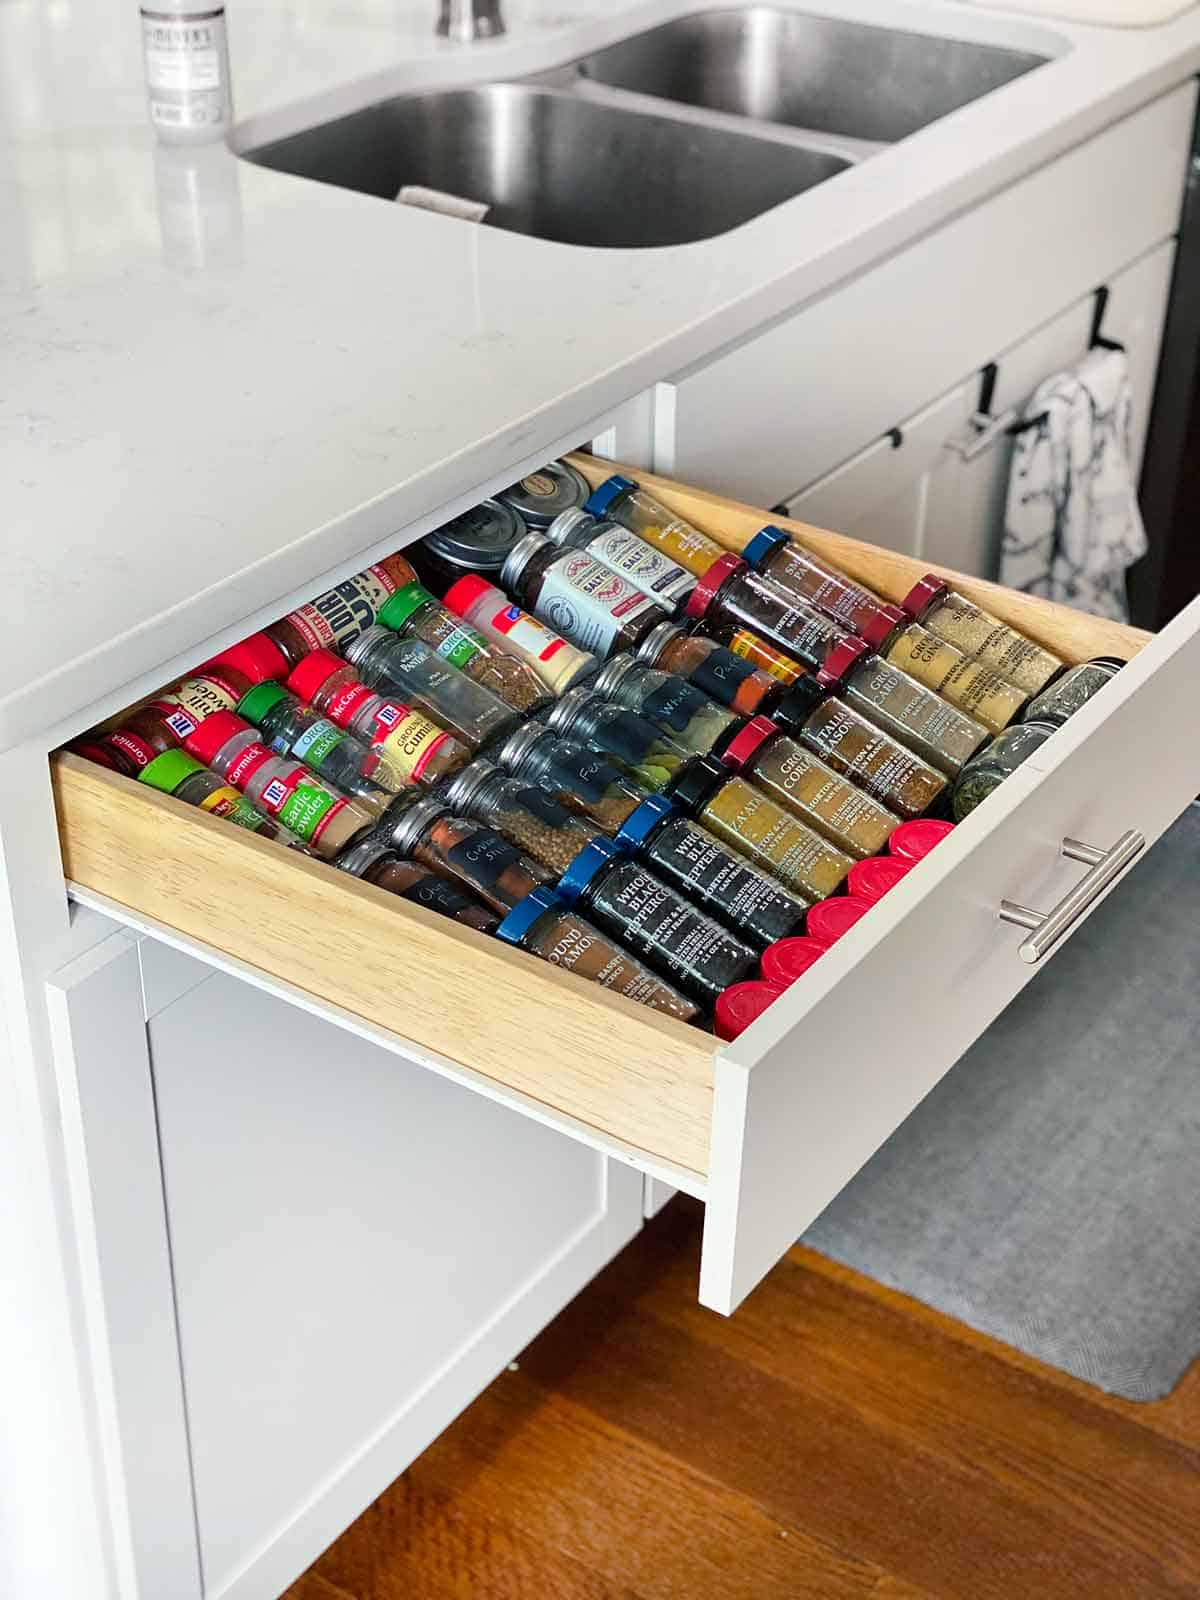 An open kitchen drawer with spices arranged on a rack.